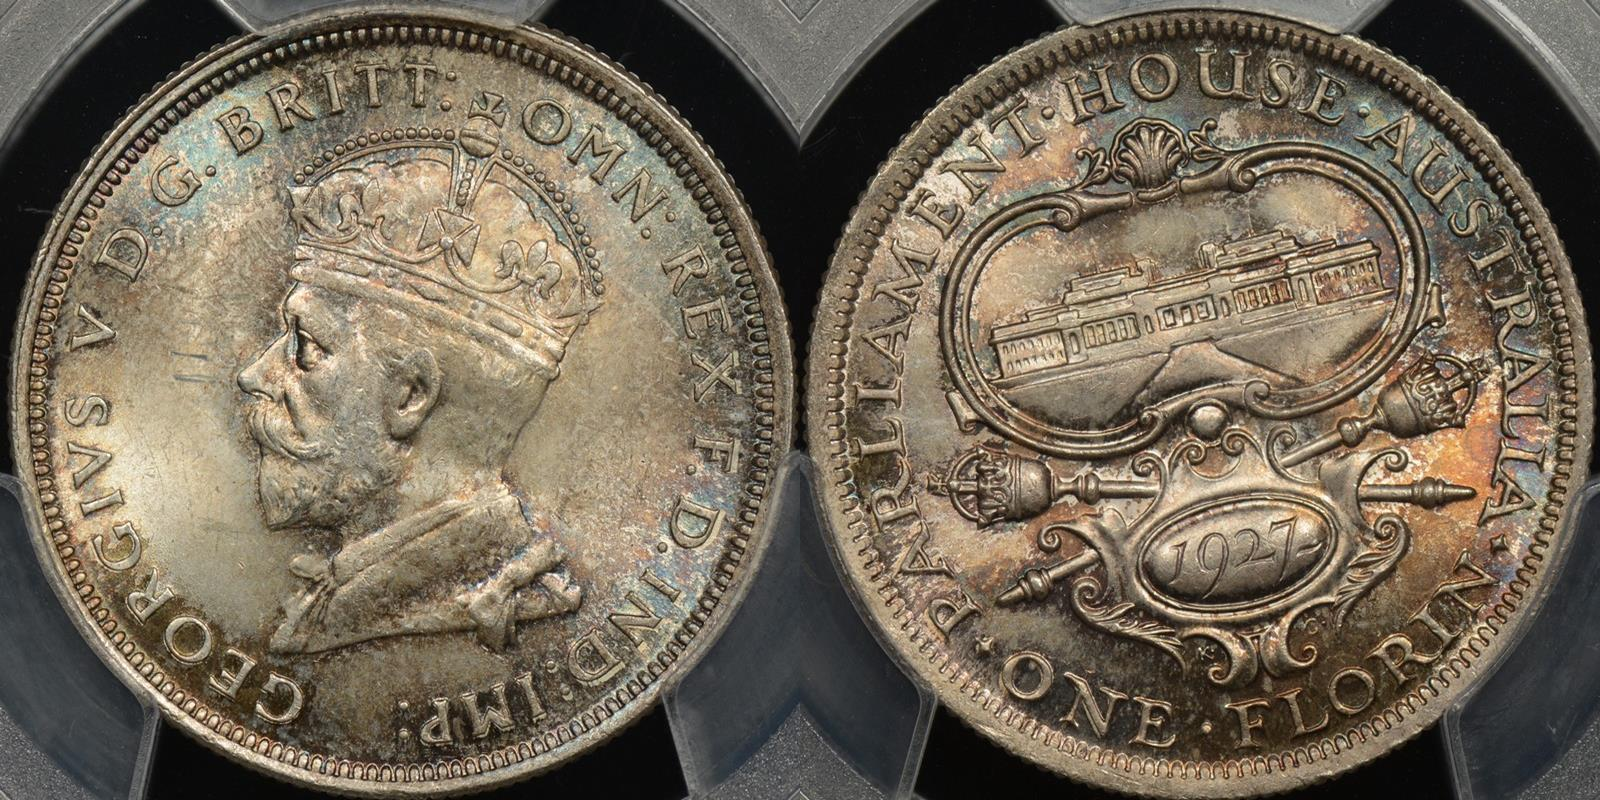 Australia 1927 parliament florin Choice Uncirculated PCGS MS64[11]